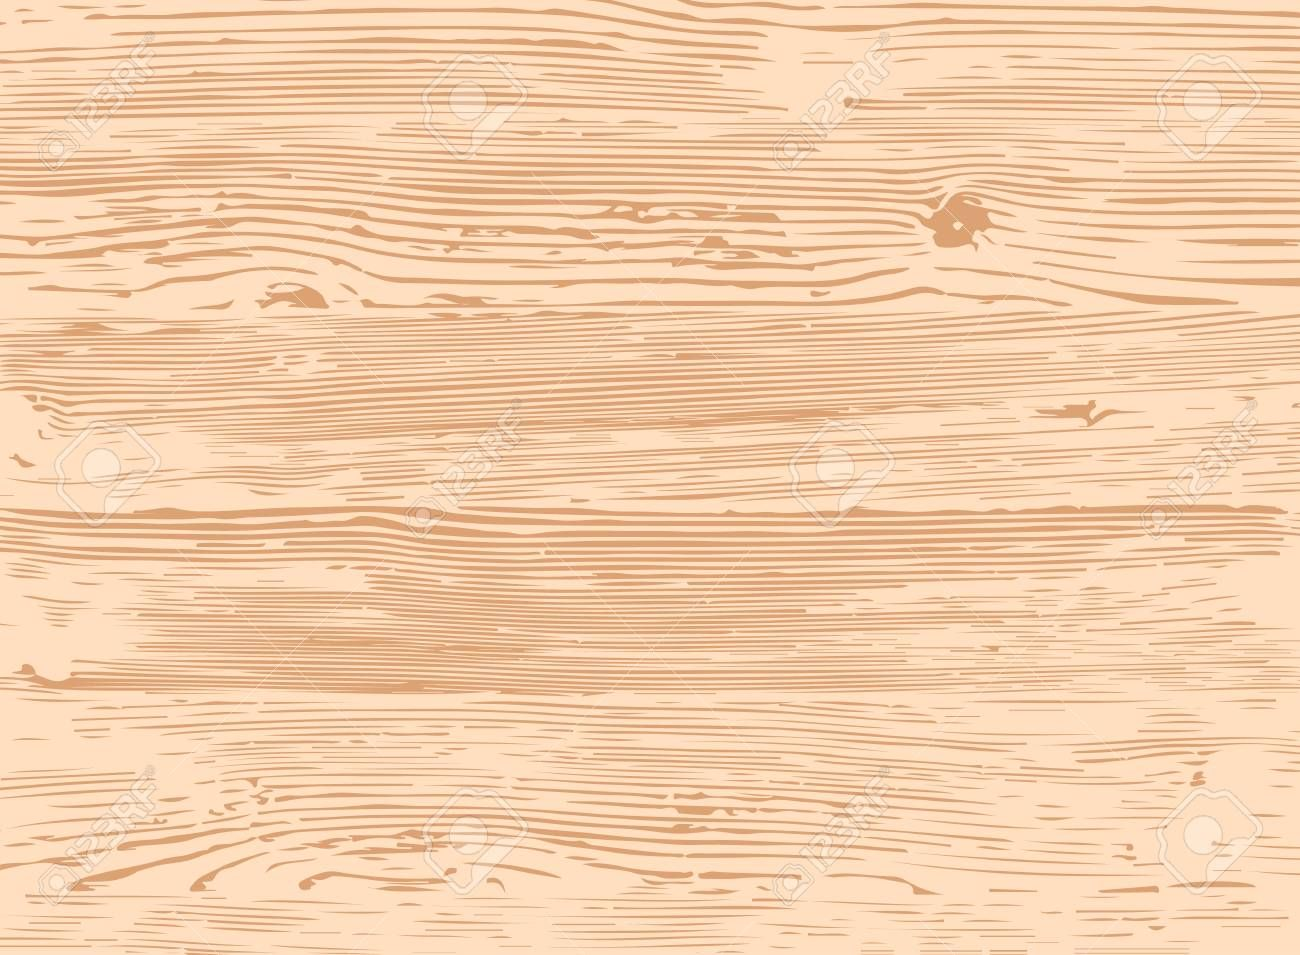 Wooden Planks Overlay Texture For Your Design Shabby Chic Background Easy To Edit Vector Wood Texture Bac Shabby Chic Background Wood Texture Abstract Design